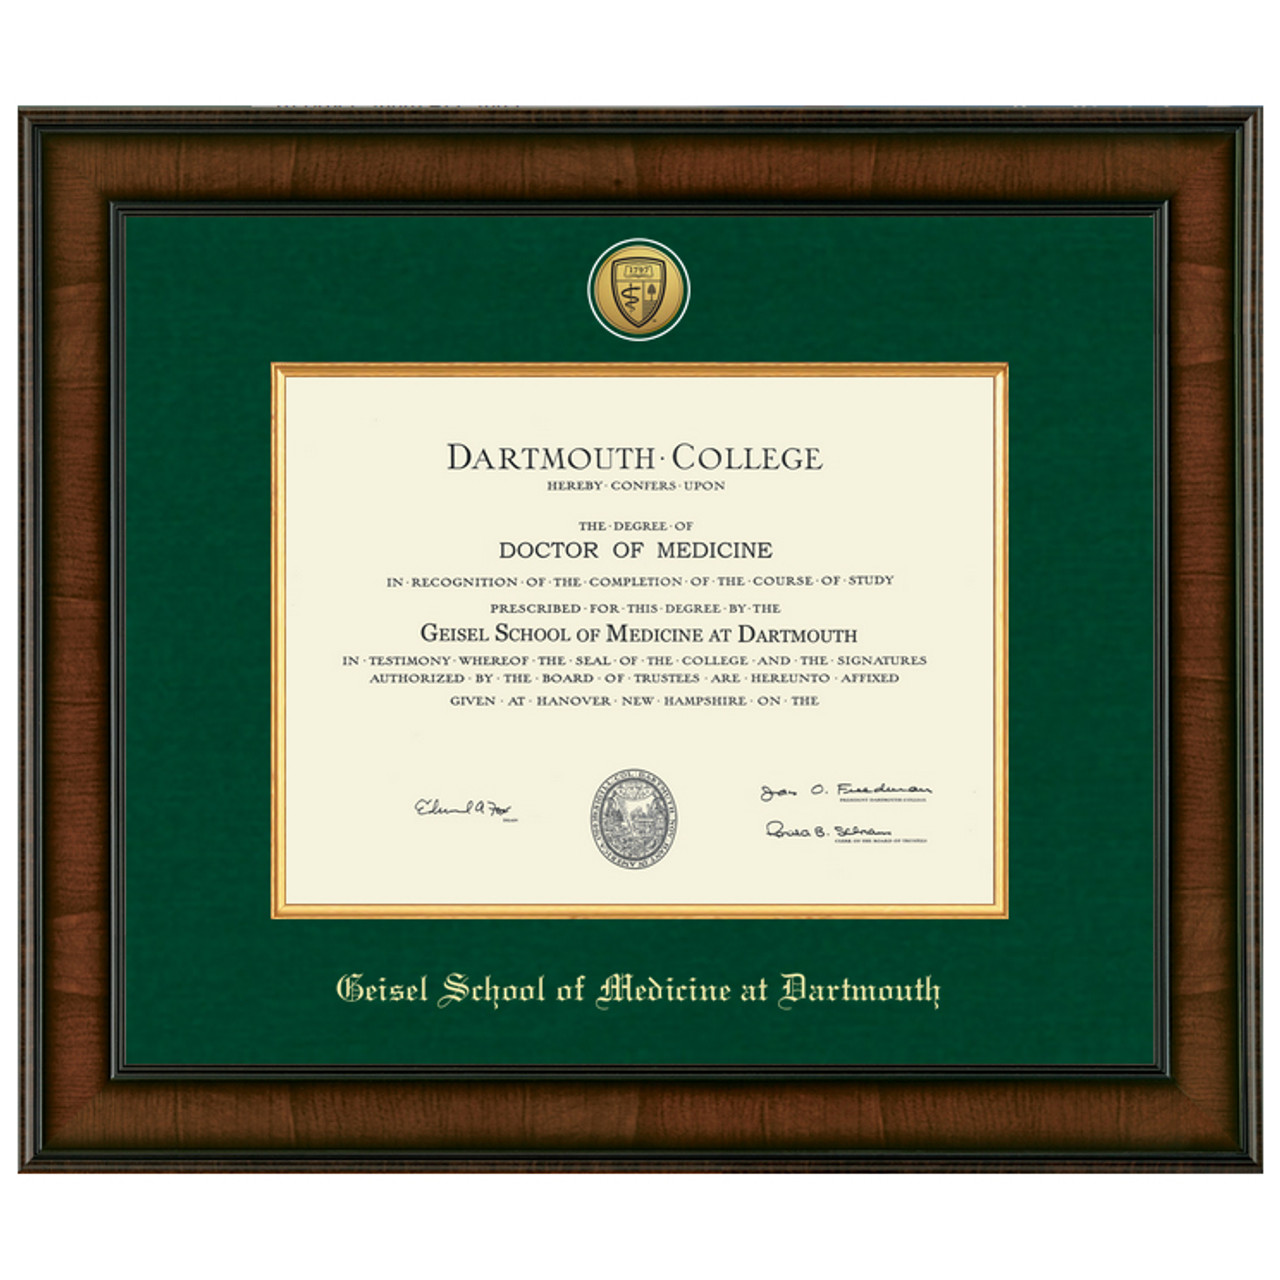 Murano Diploma Frame - Geisel School of Medicine at Dartmouth